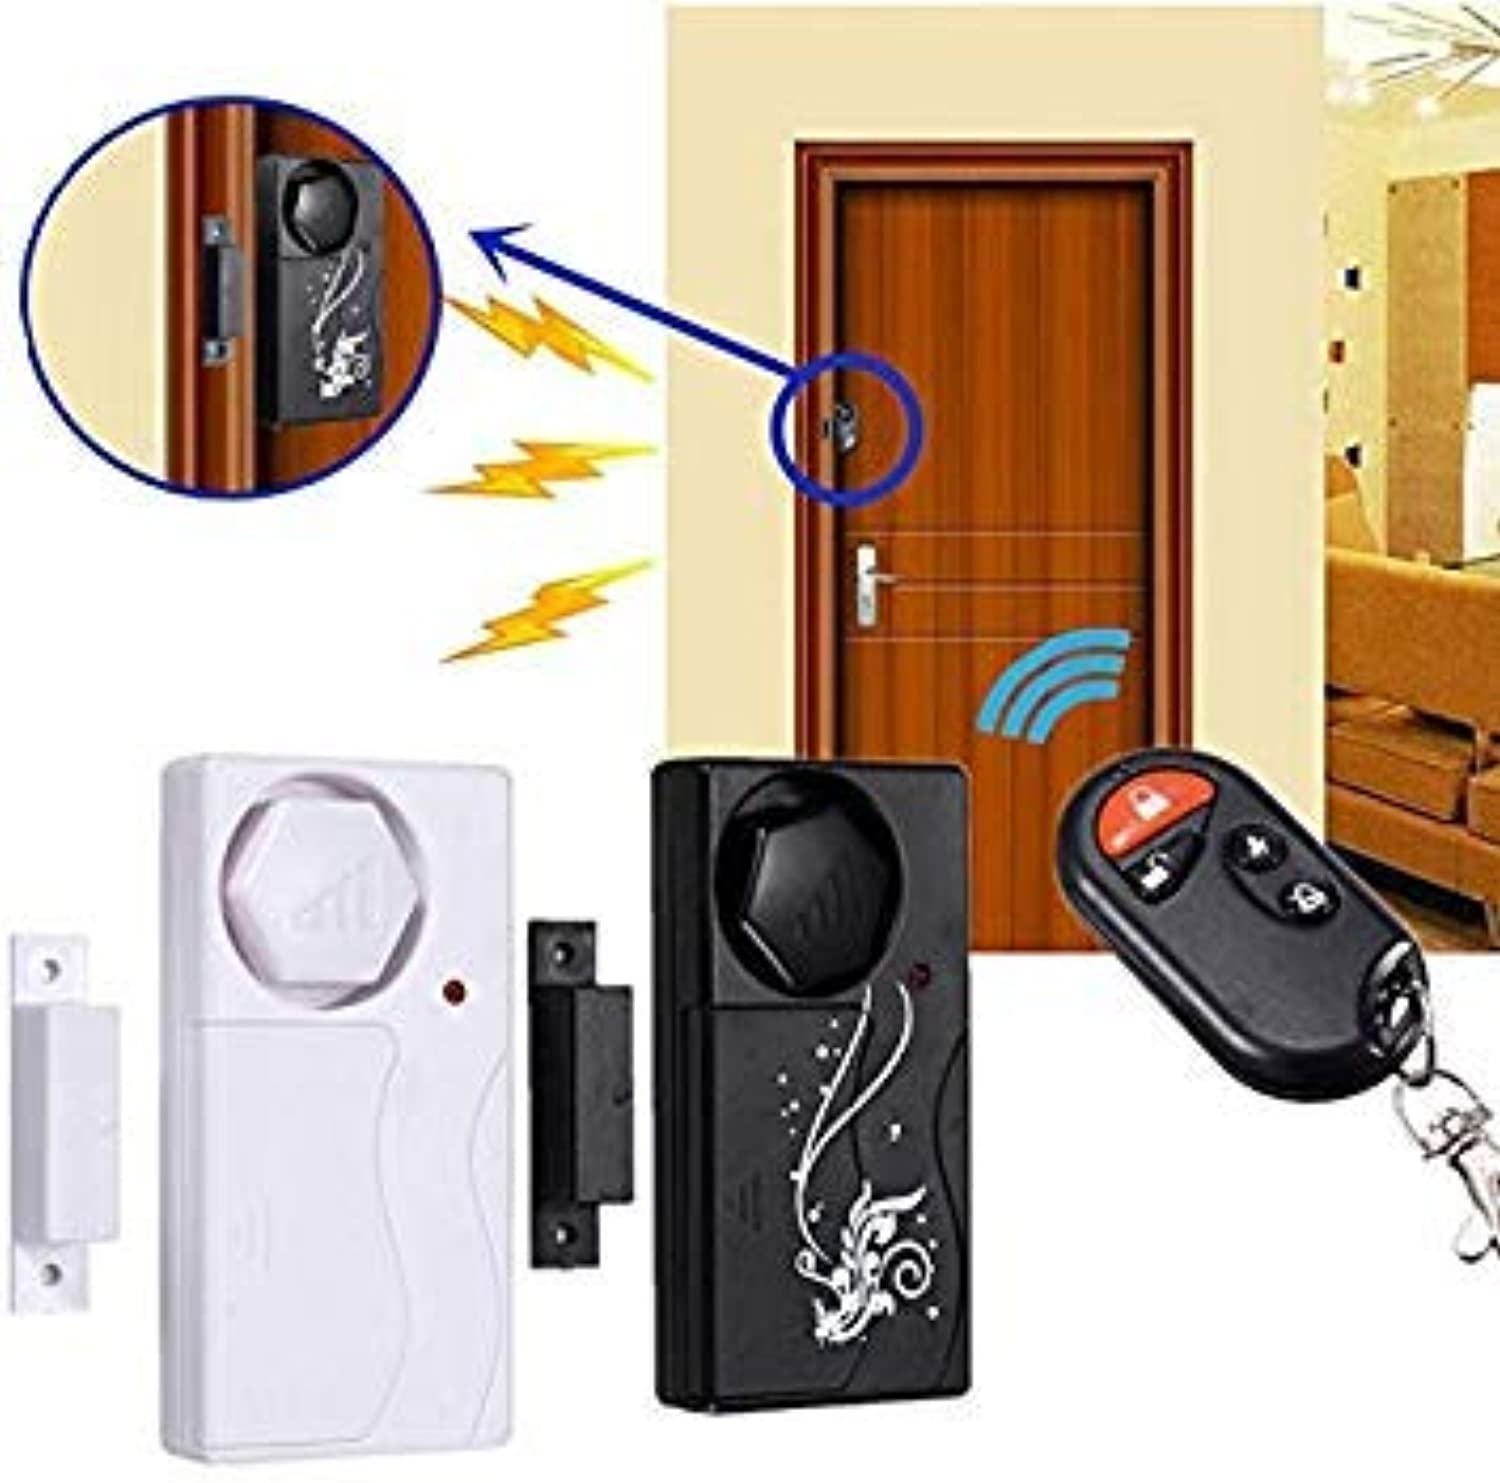 Home Security Door Window Alarm System with Magnetic Siren 110Db + Remote Control(Black)